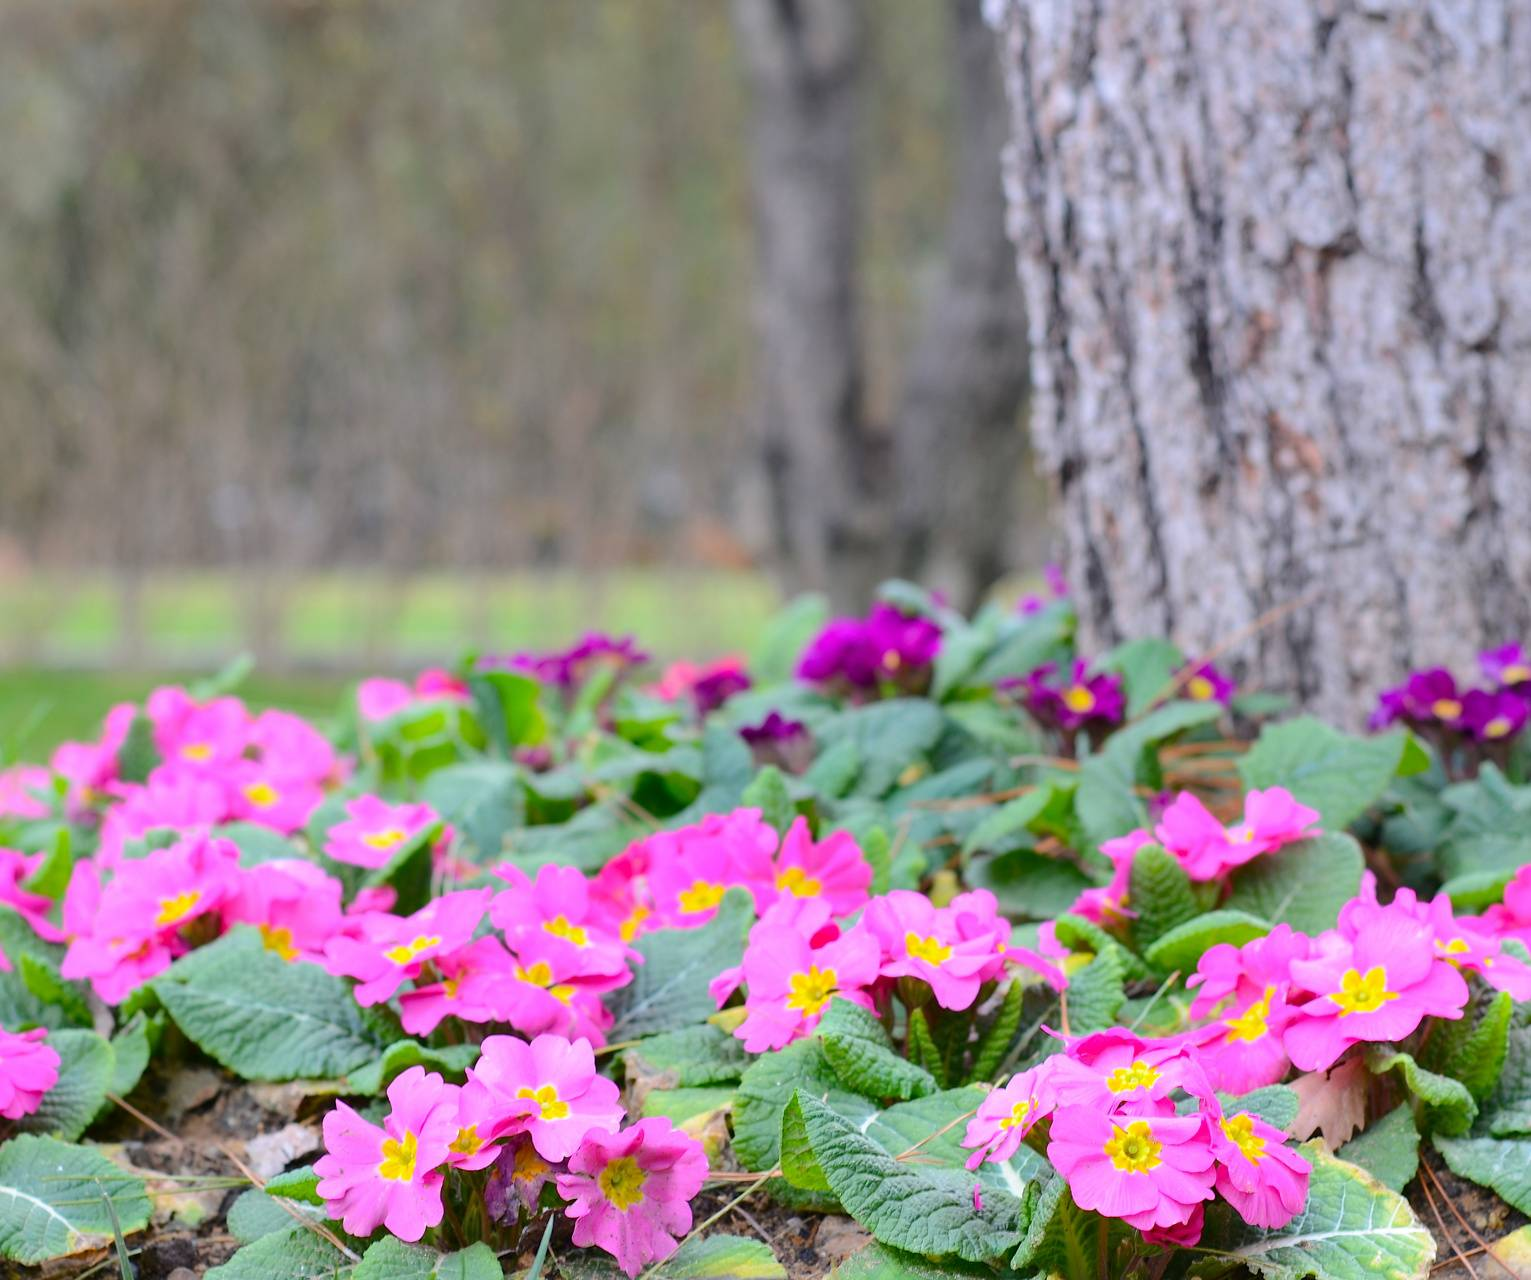 Flowers and tree